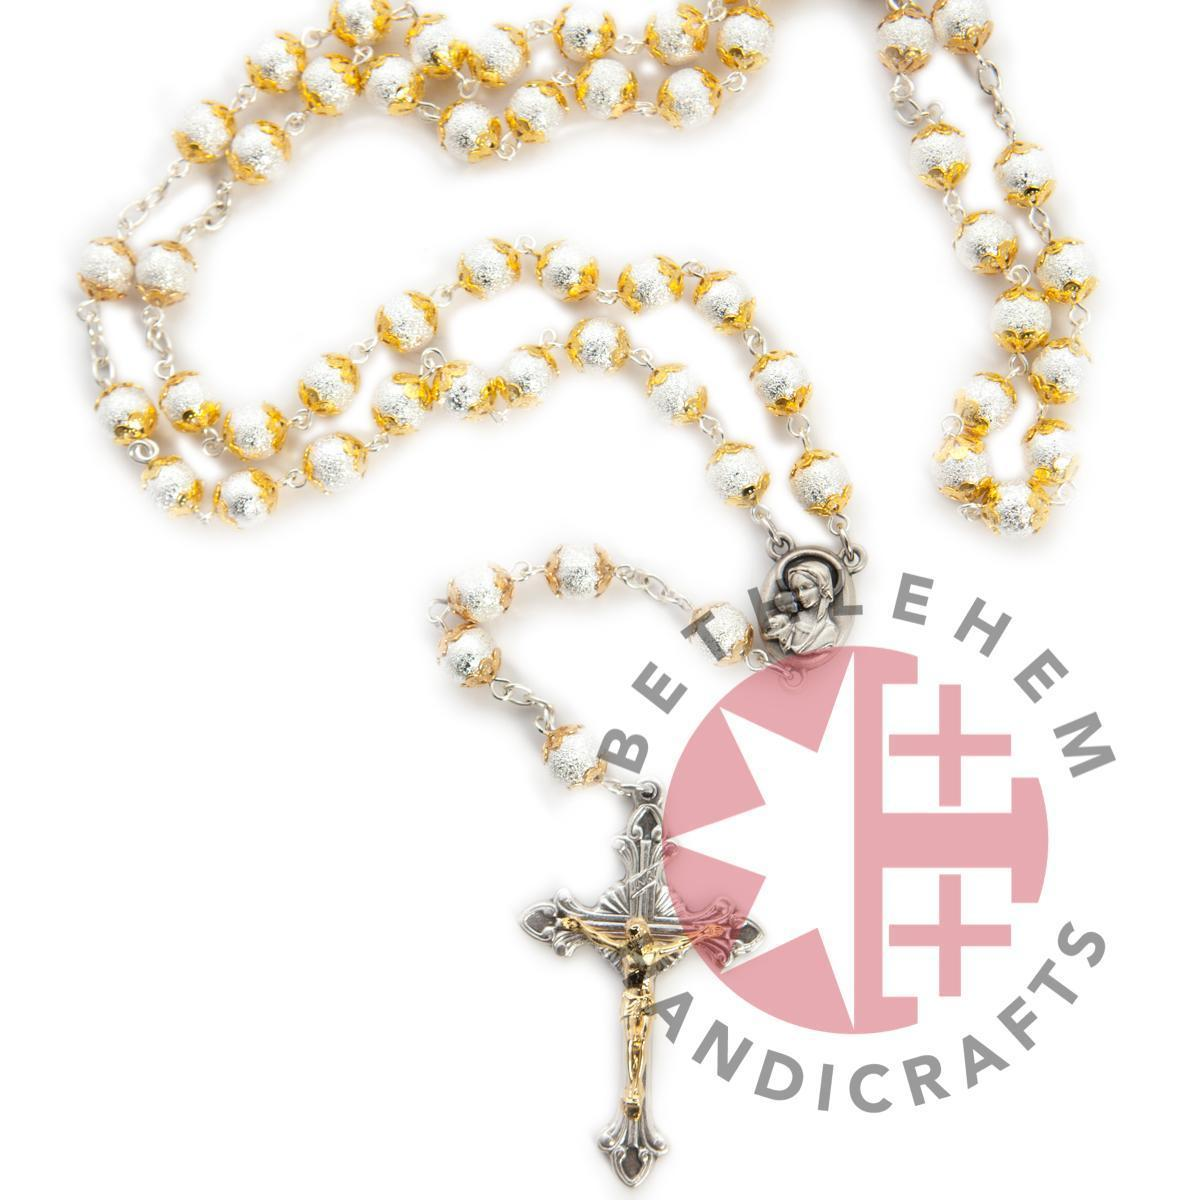 Silver and Gold Plated Rosary with Holy Land Soil - Jewelry - Bethlehem Handicrafts